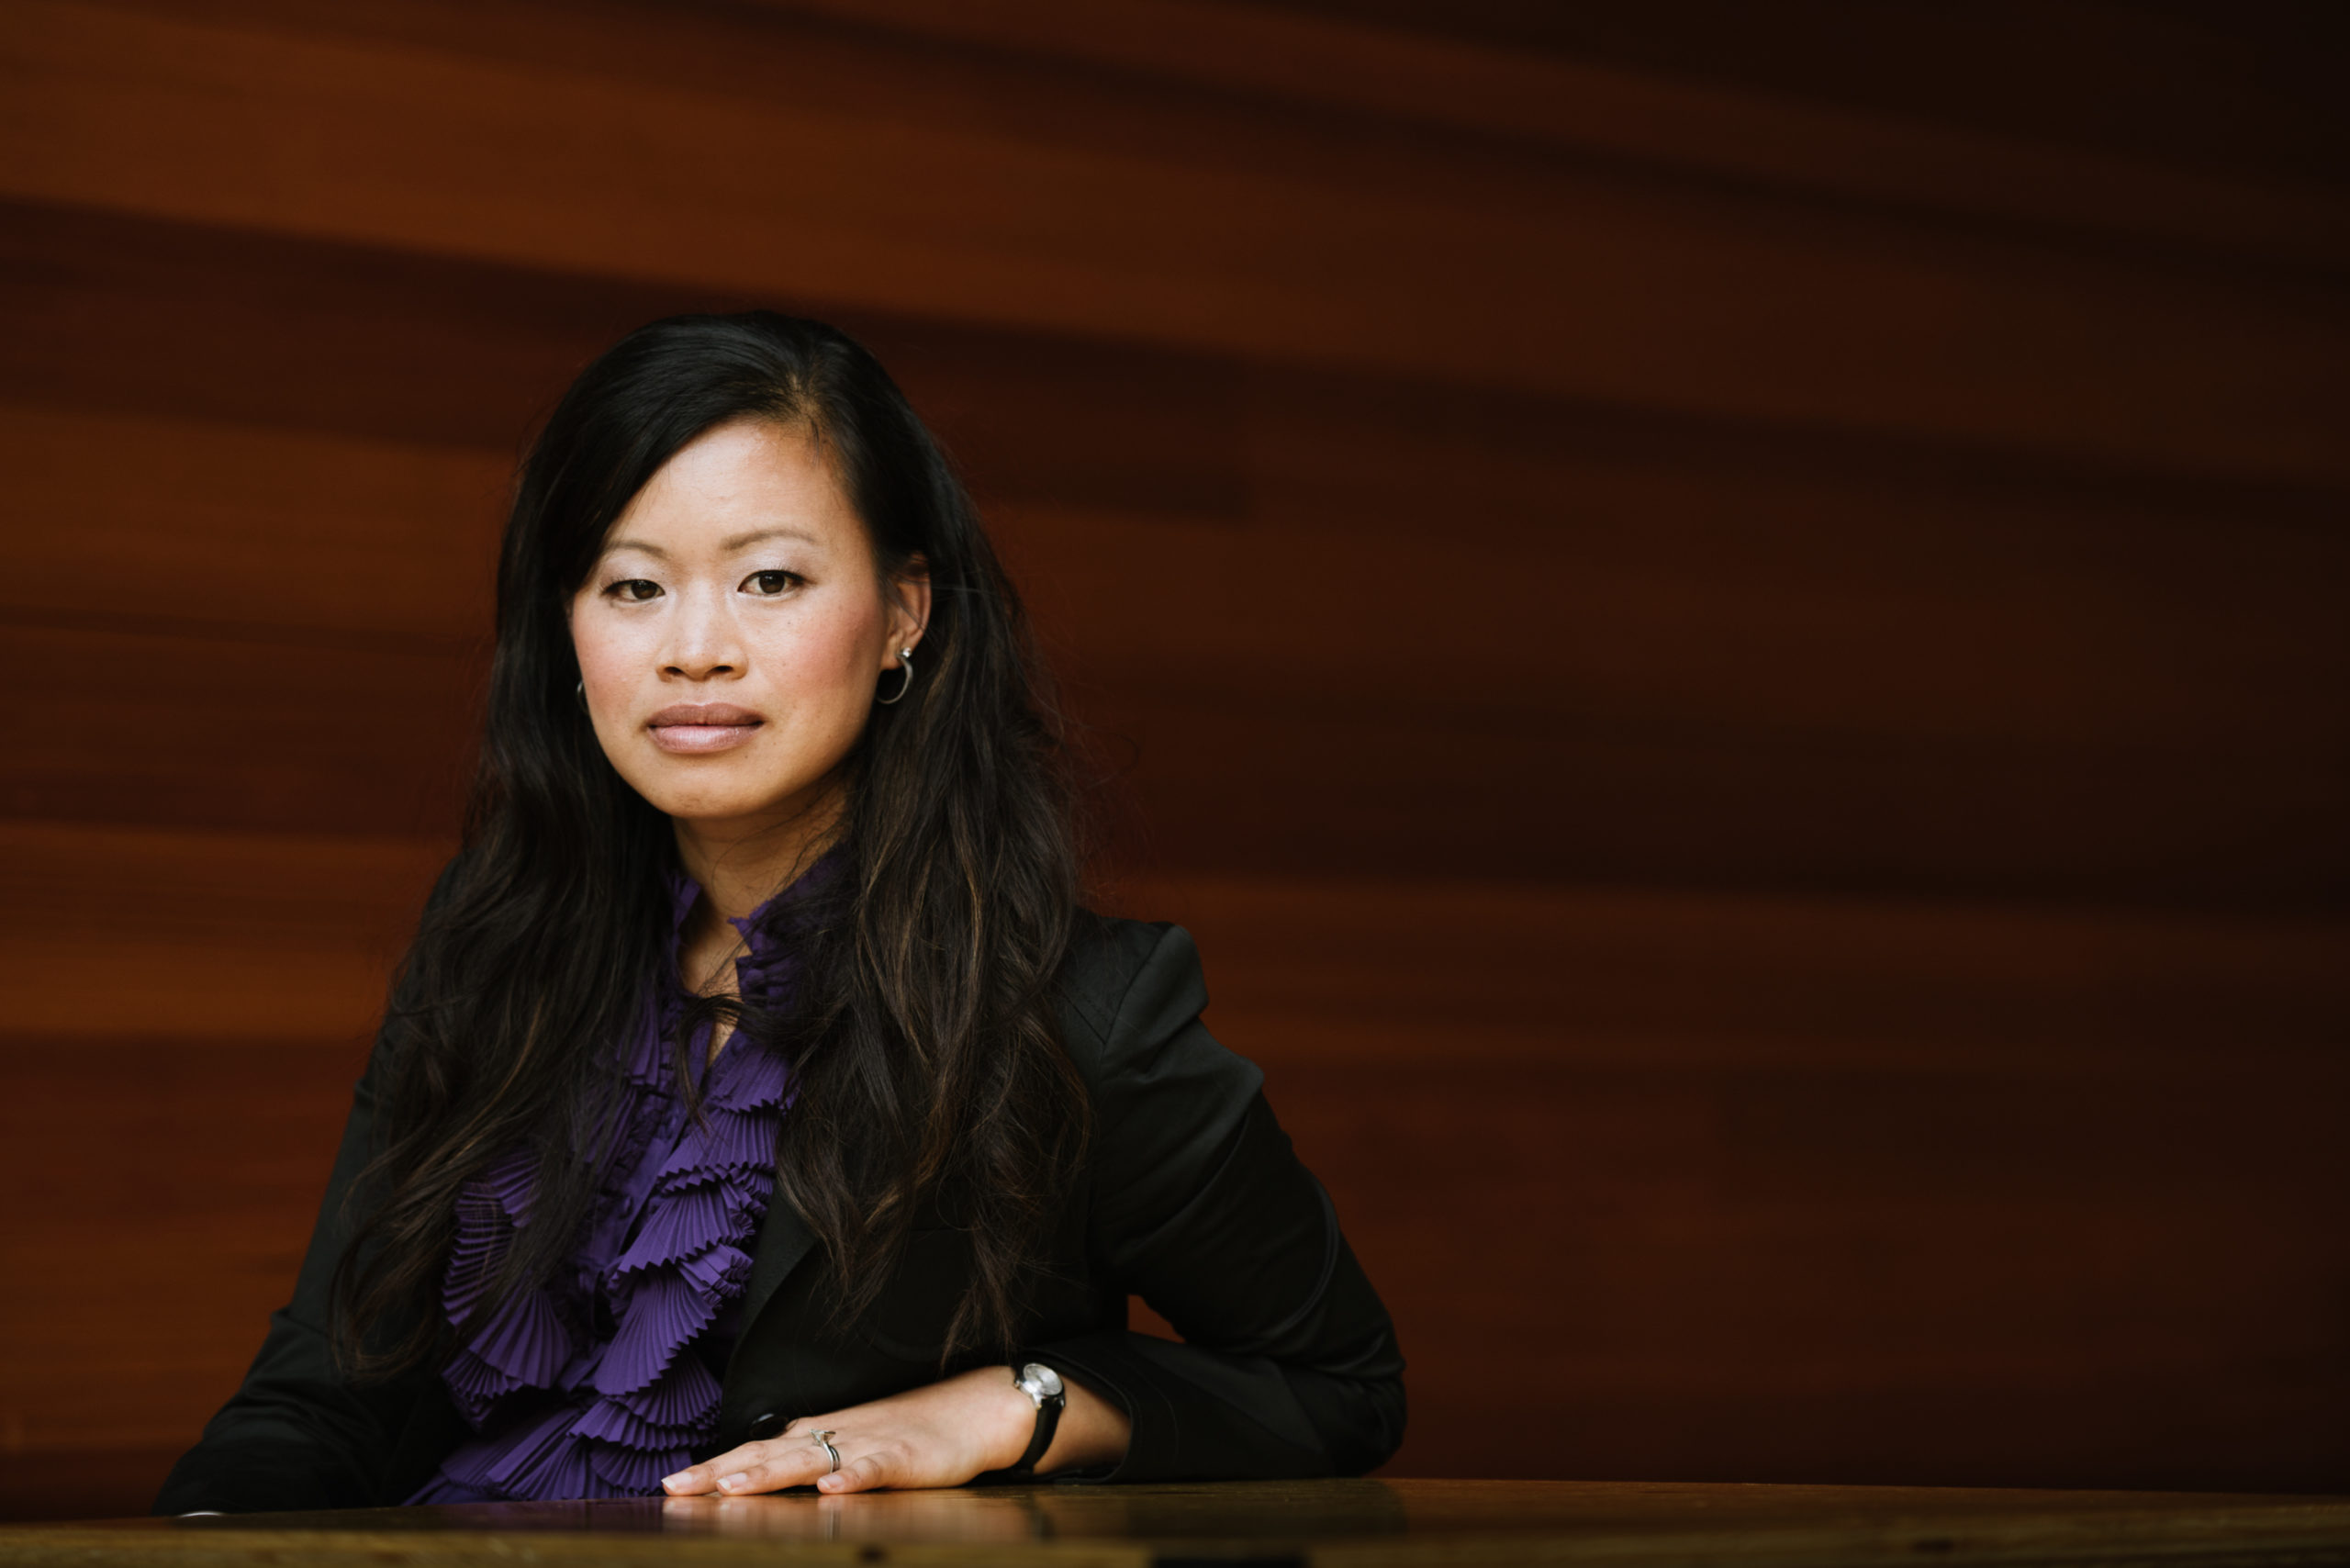 """Evelyn M. Lee, AIA, a 2014 AIA YoungArchitects Award recipient, is part of the strategy team at MKThink, San Francisco-based research, planning, and design firm. Lee, who has been active in the AIA's Repositioning efforts, holds graduate degrees in Architecture, Public Administration, and Business Administration and is an advocate for architects to expand the definition of their traditional roles. """"As an architect I do not thrive as a designer of buildings, project manager, or construction administrator,"""" she says, """"and so, I have really found my place as a designstrategist and communications expert."""""""